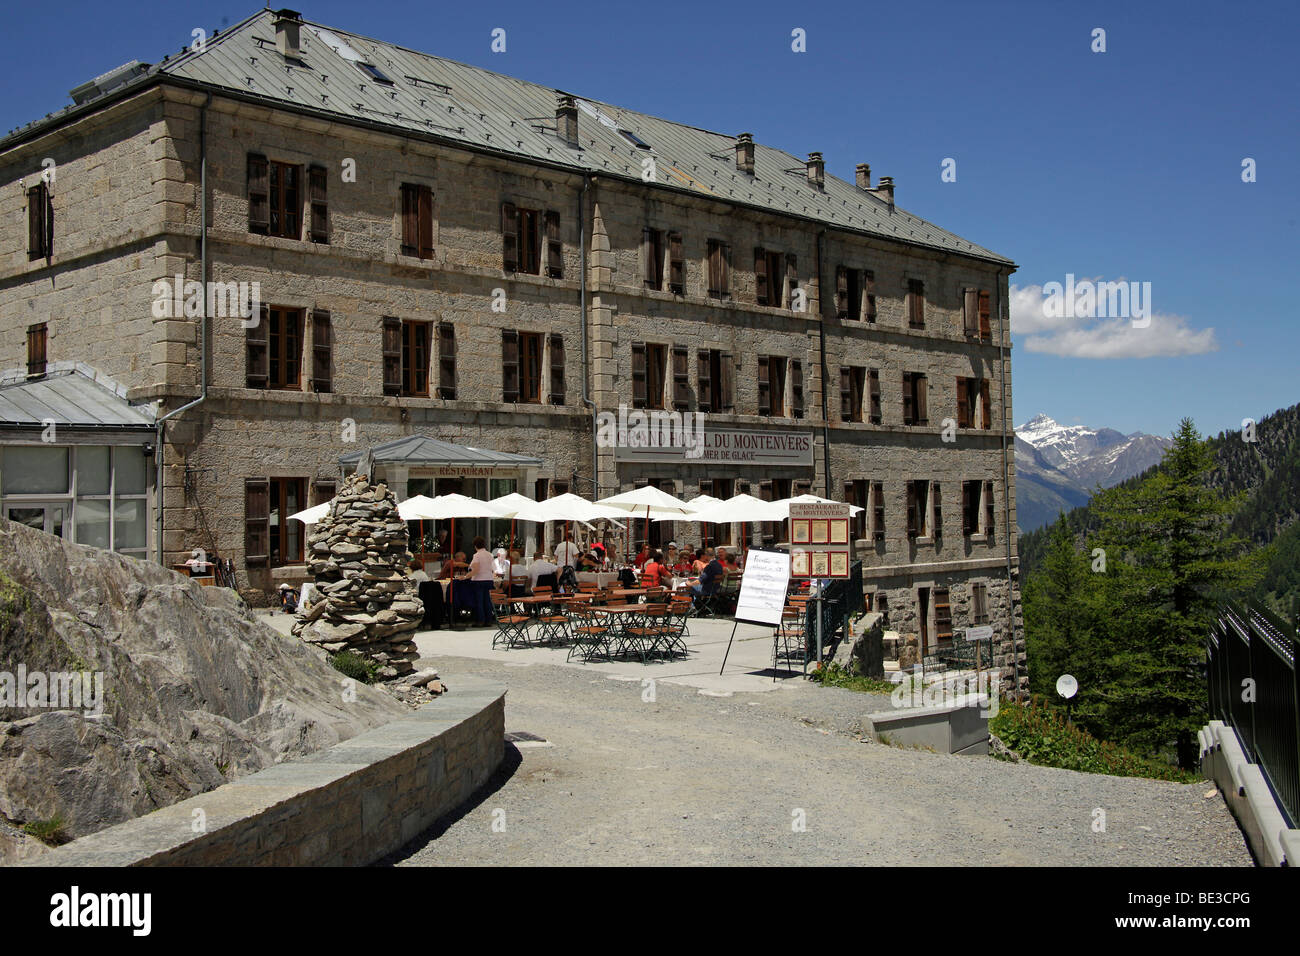 grand hotel du montenvers on the la mer de glace glacier in the mont stock photo royalty free. Black Bedroom Furniture Sets. Home Design Ideas